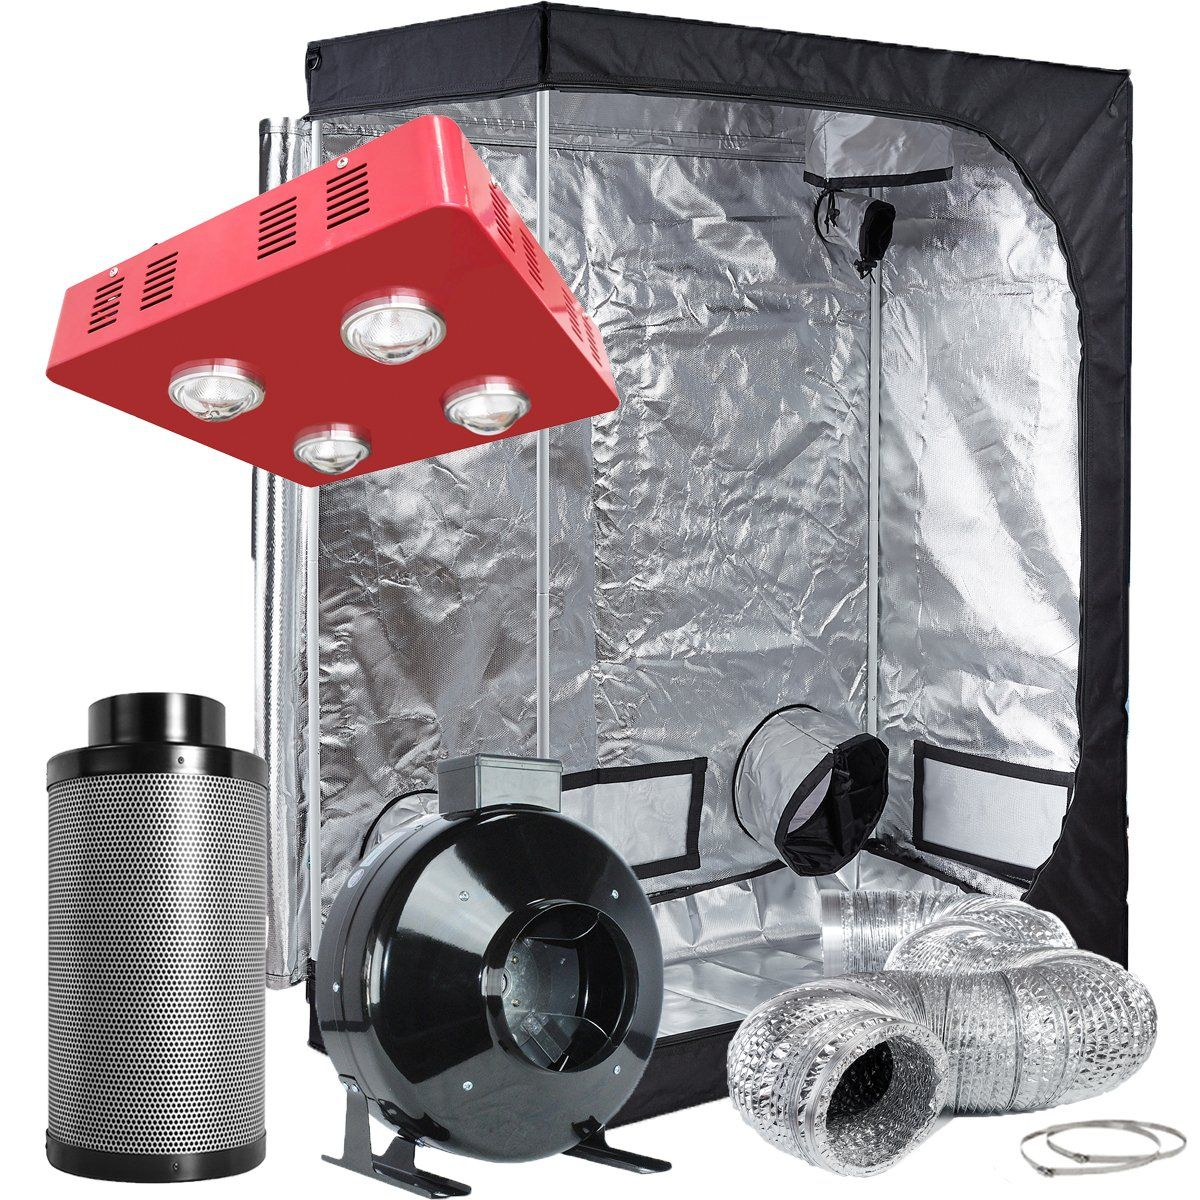 Topolite Grow Tent Complete Kit Hydroponic Growing System 640 x 480